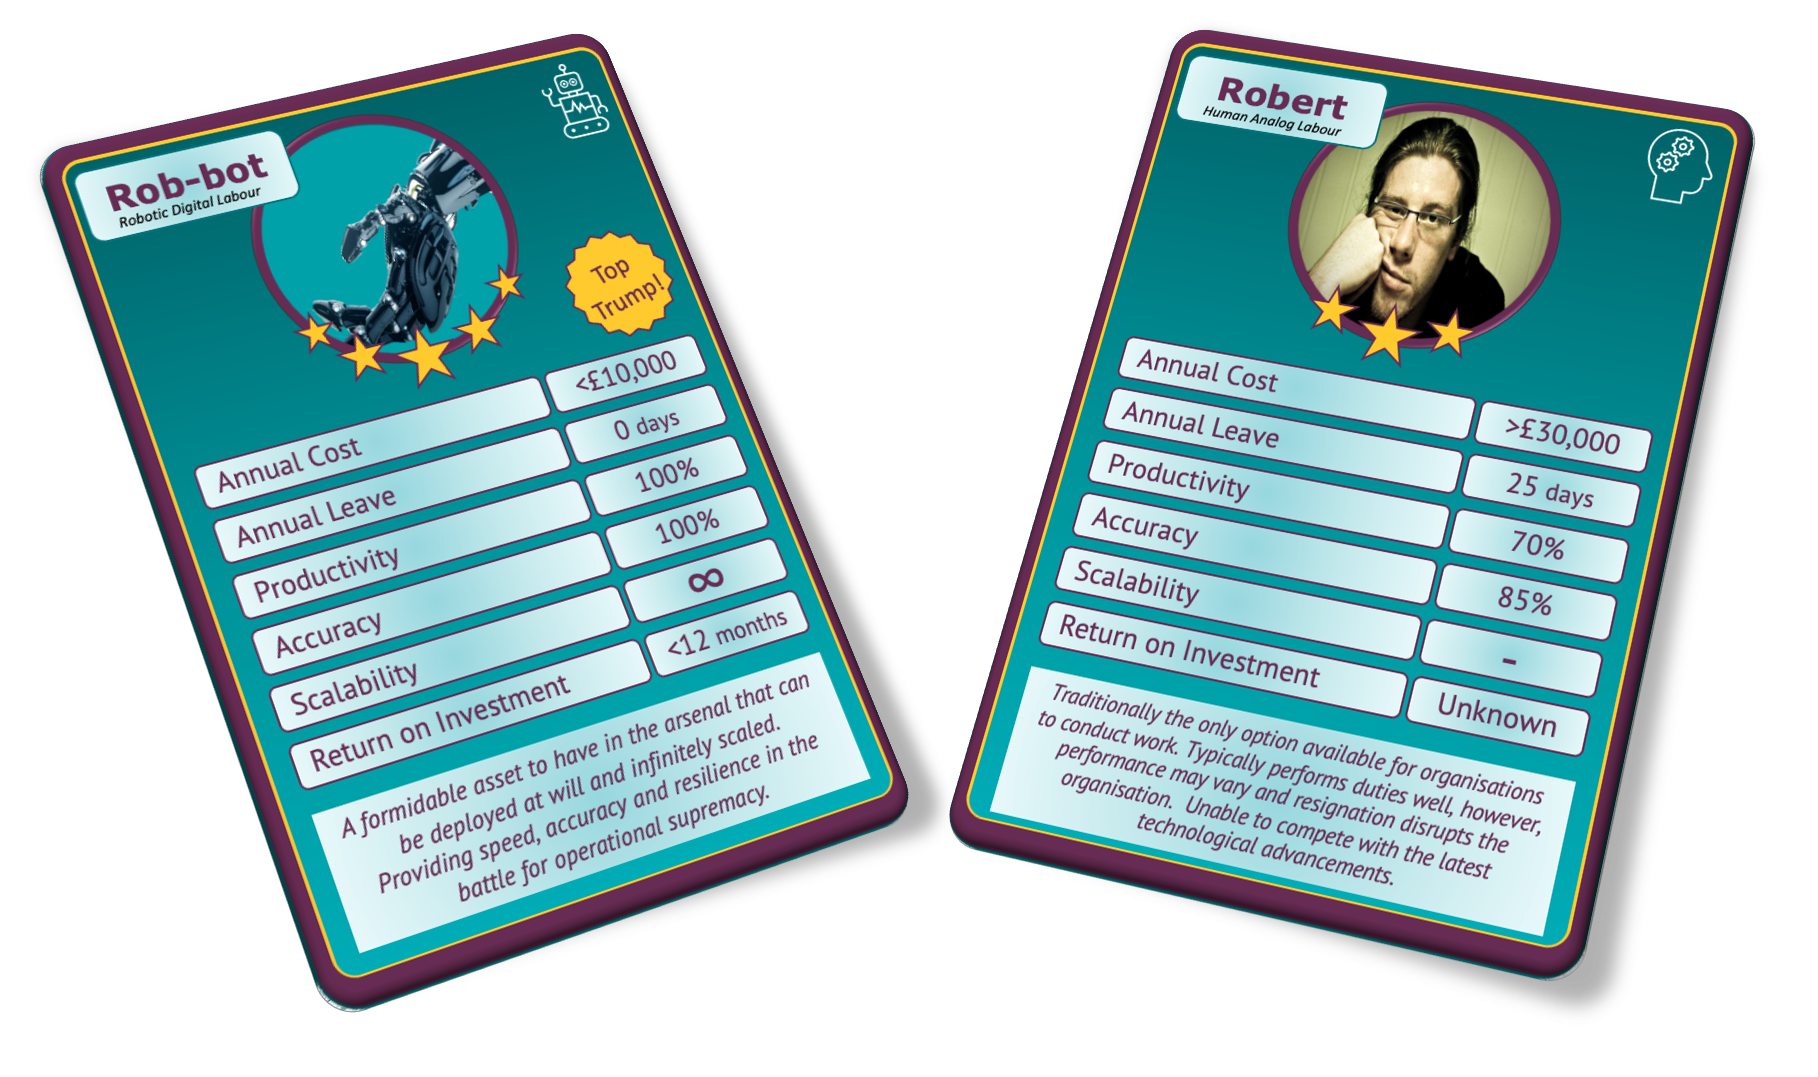 Two Top Trumps cards, one human, one robot